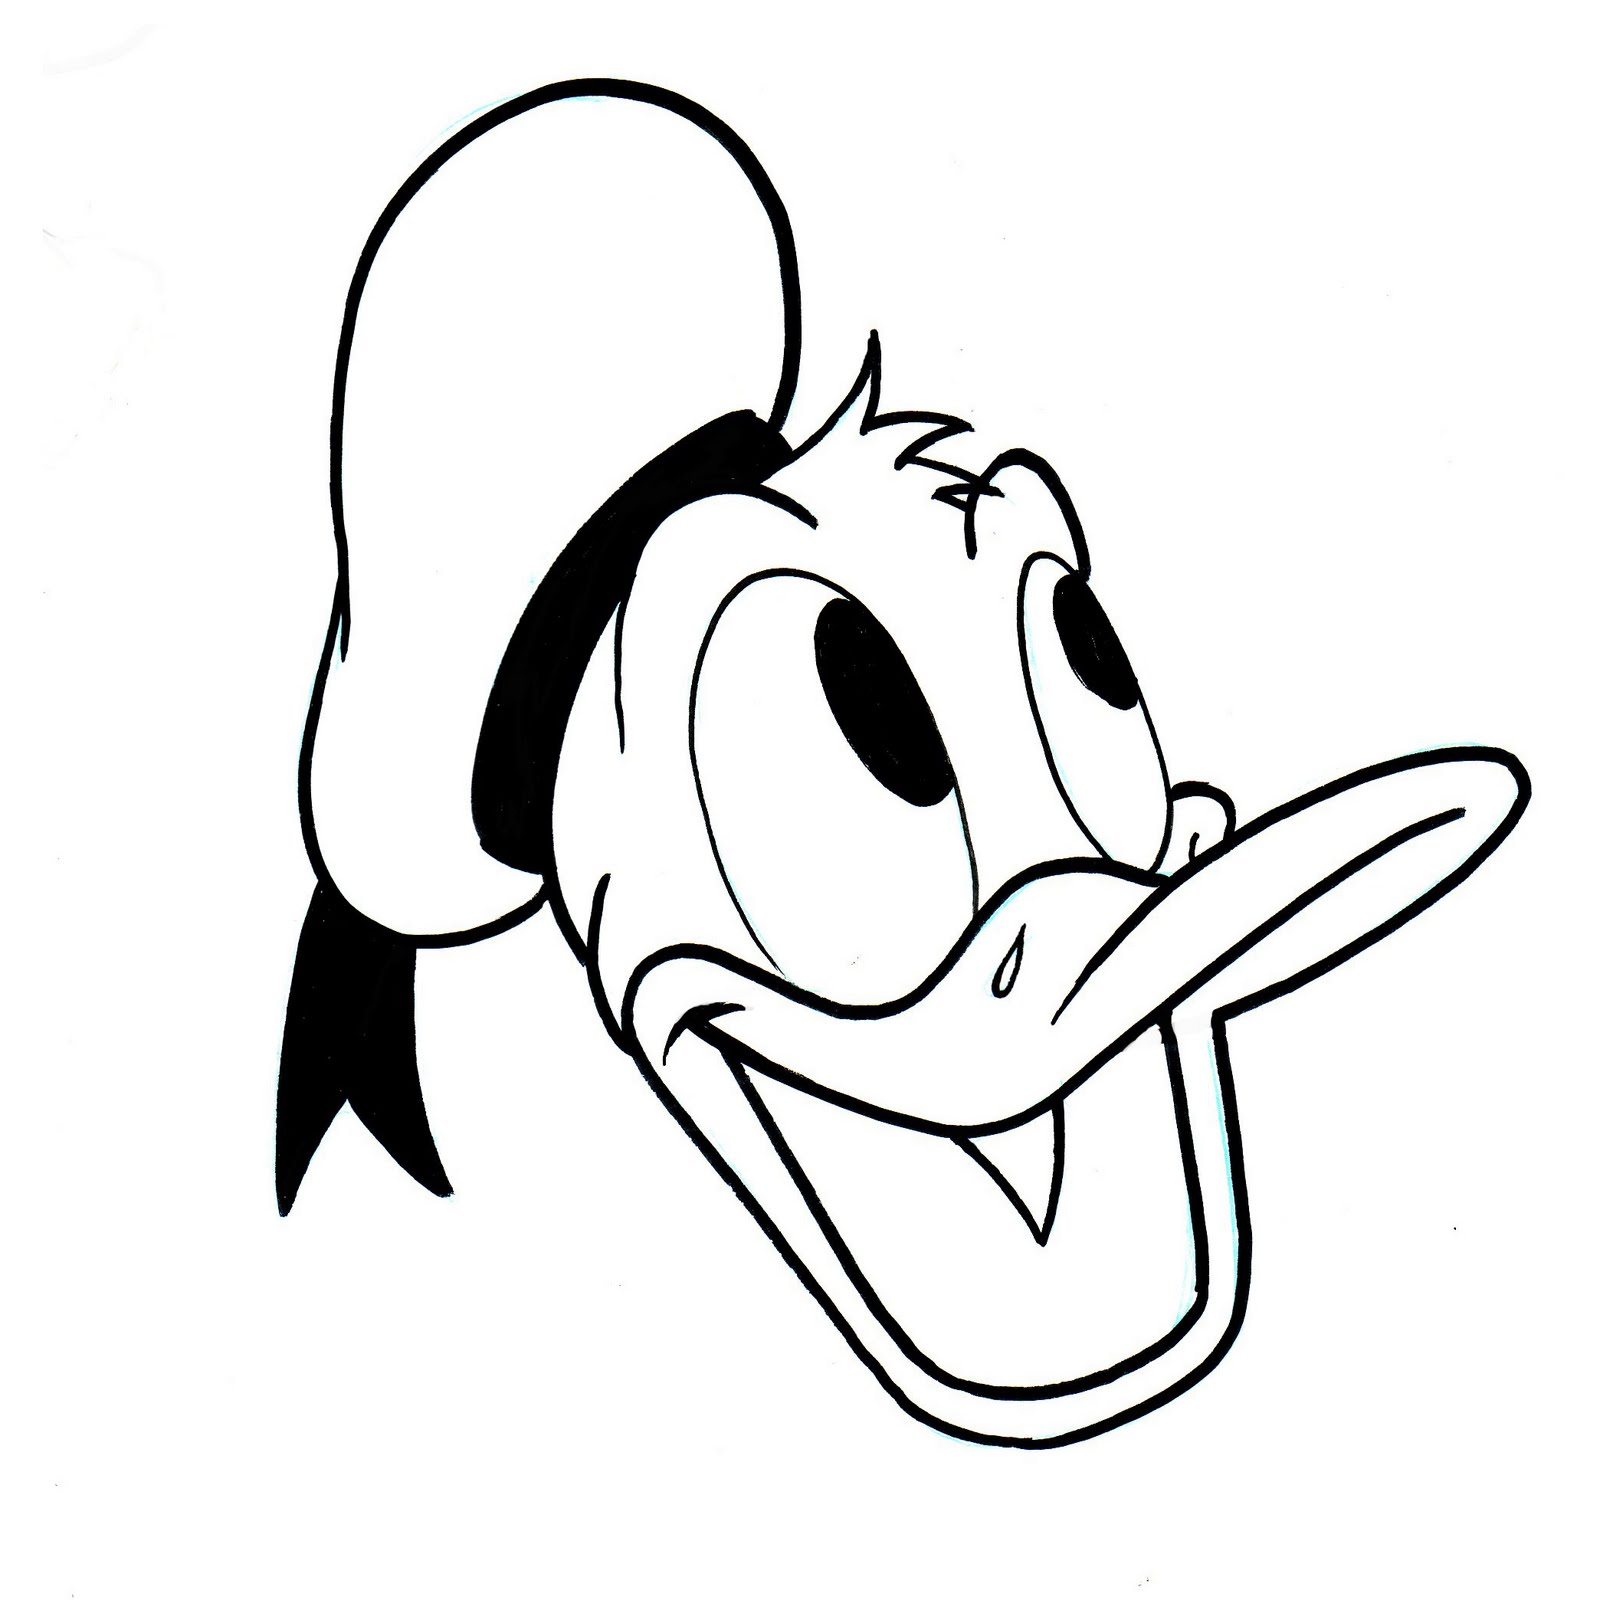 donald duck drawing at getdrawings free